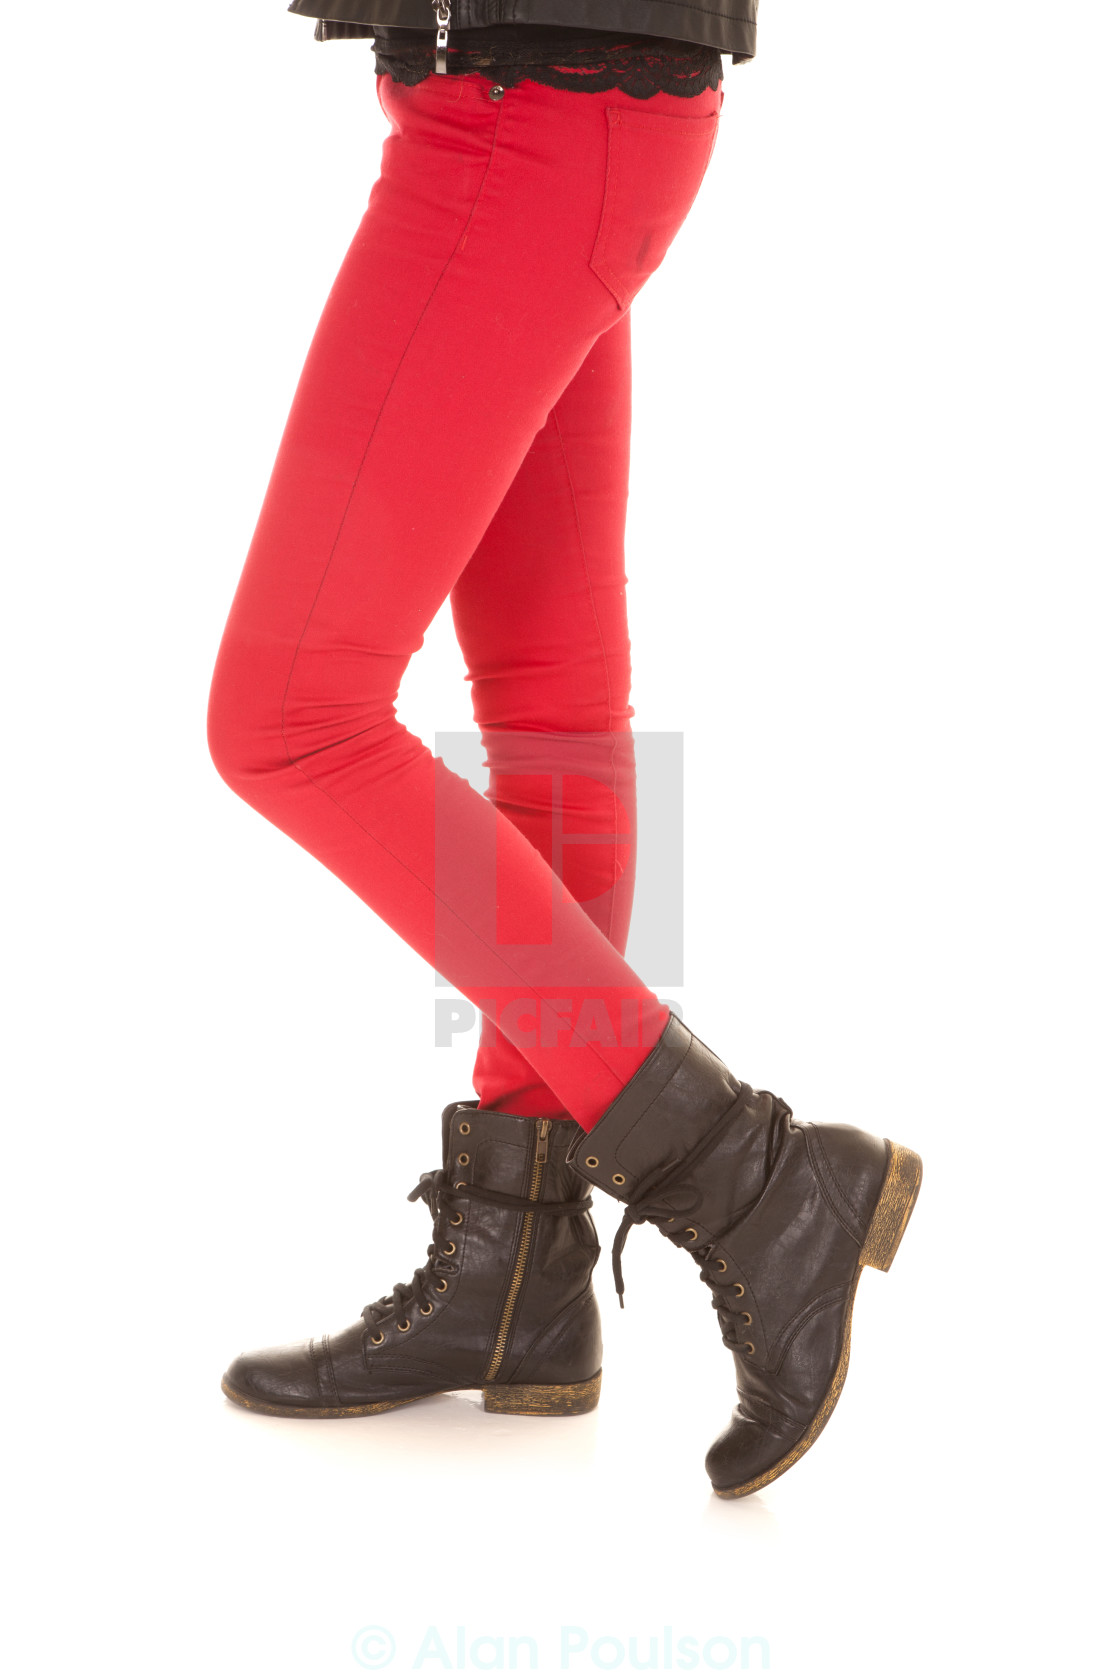 """red pants woman legs boots one on toe"" stock image"